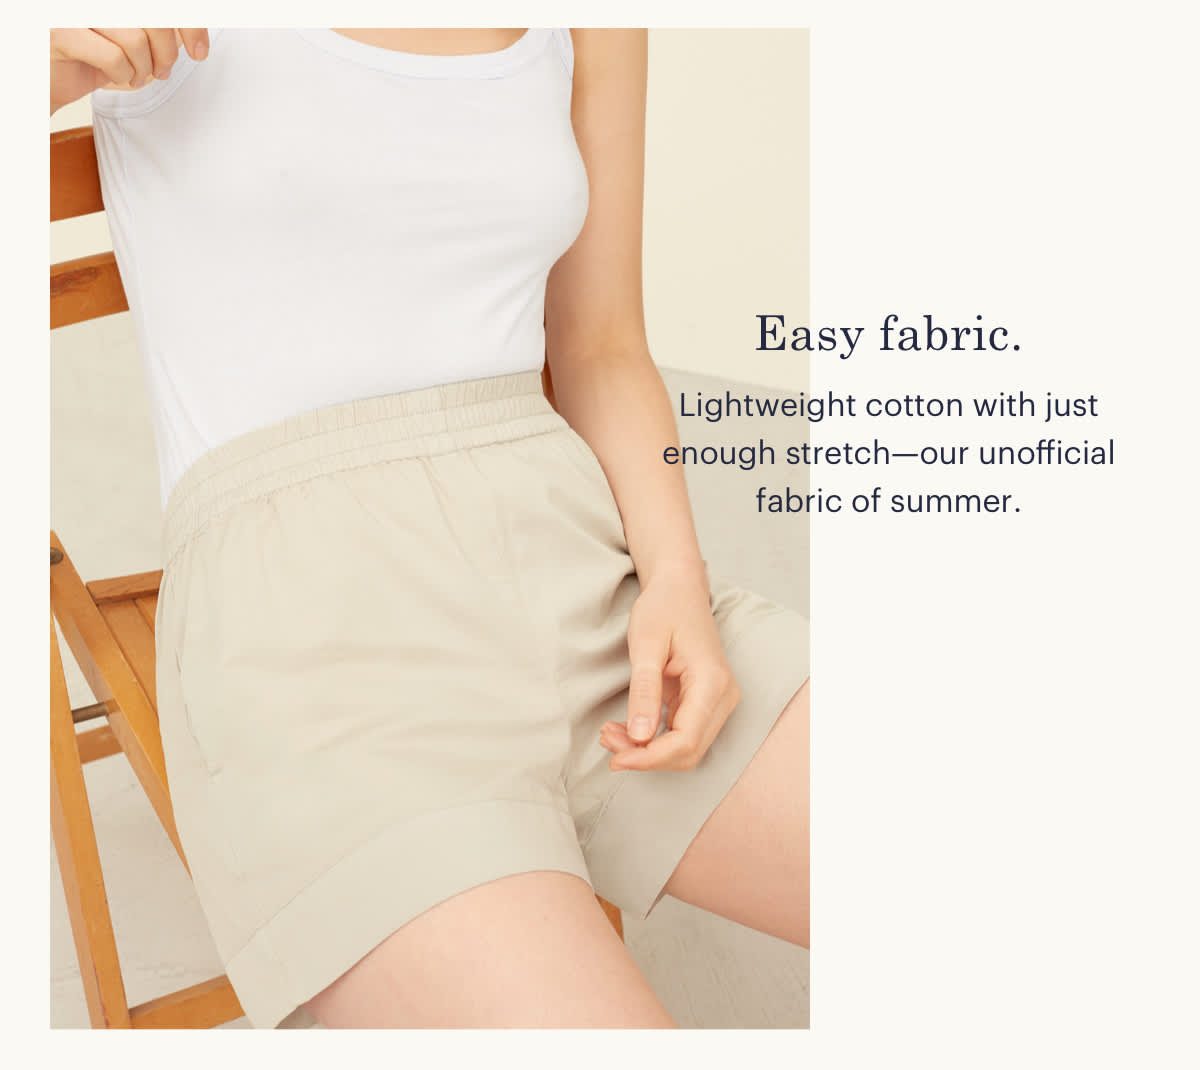 Easy fabric. Lightweight cotton with just enough stretch--our unofficial fabric of summer.